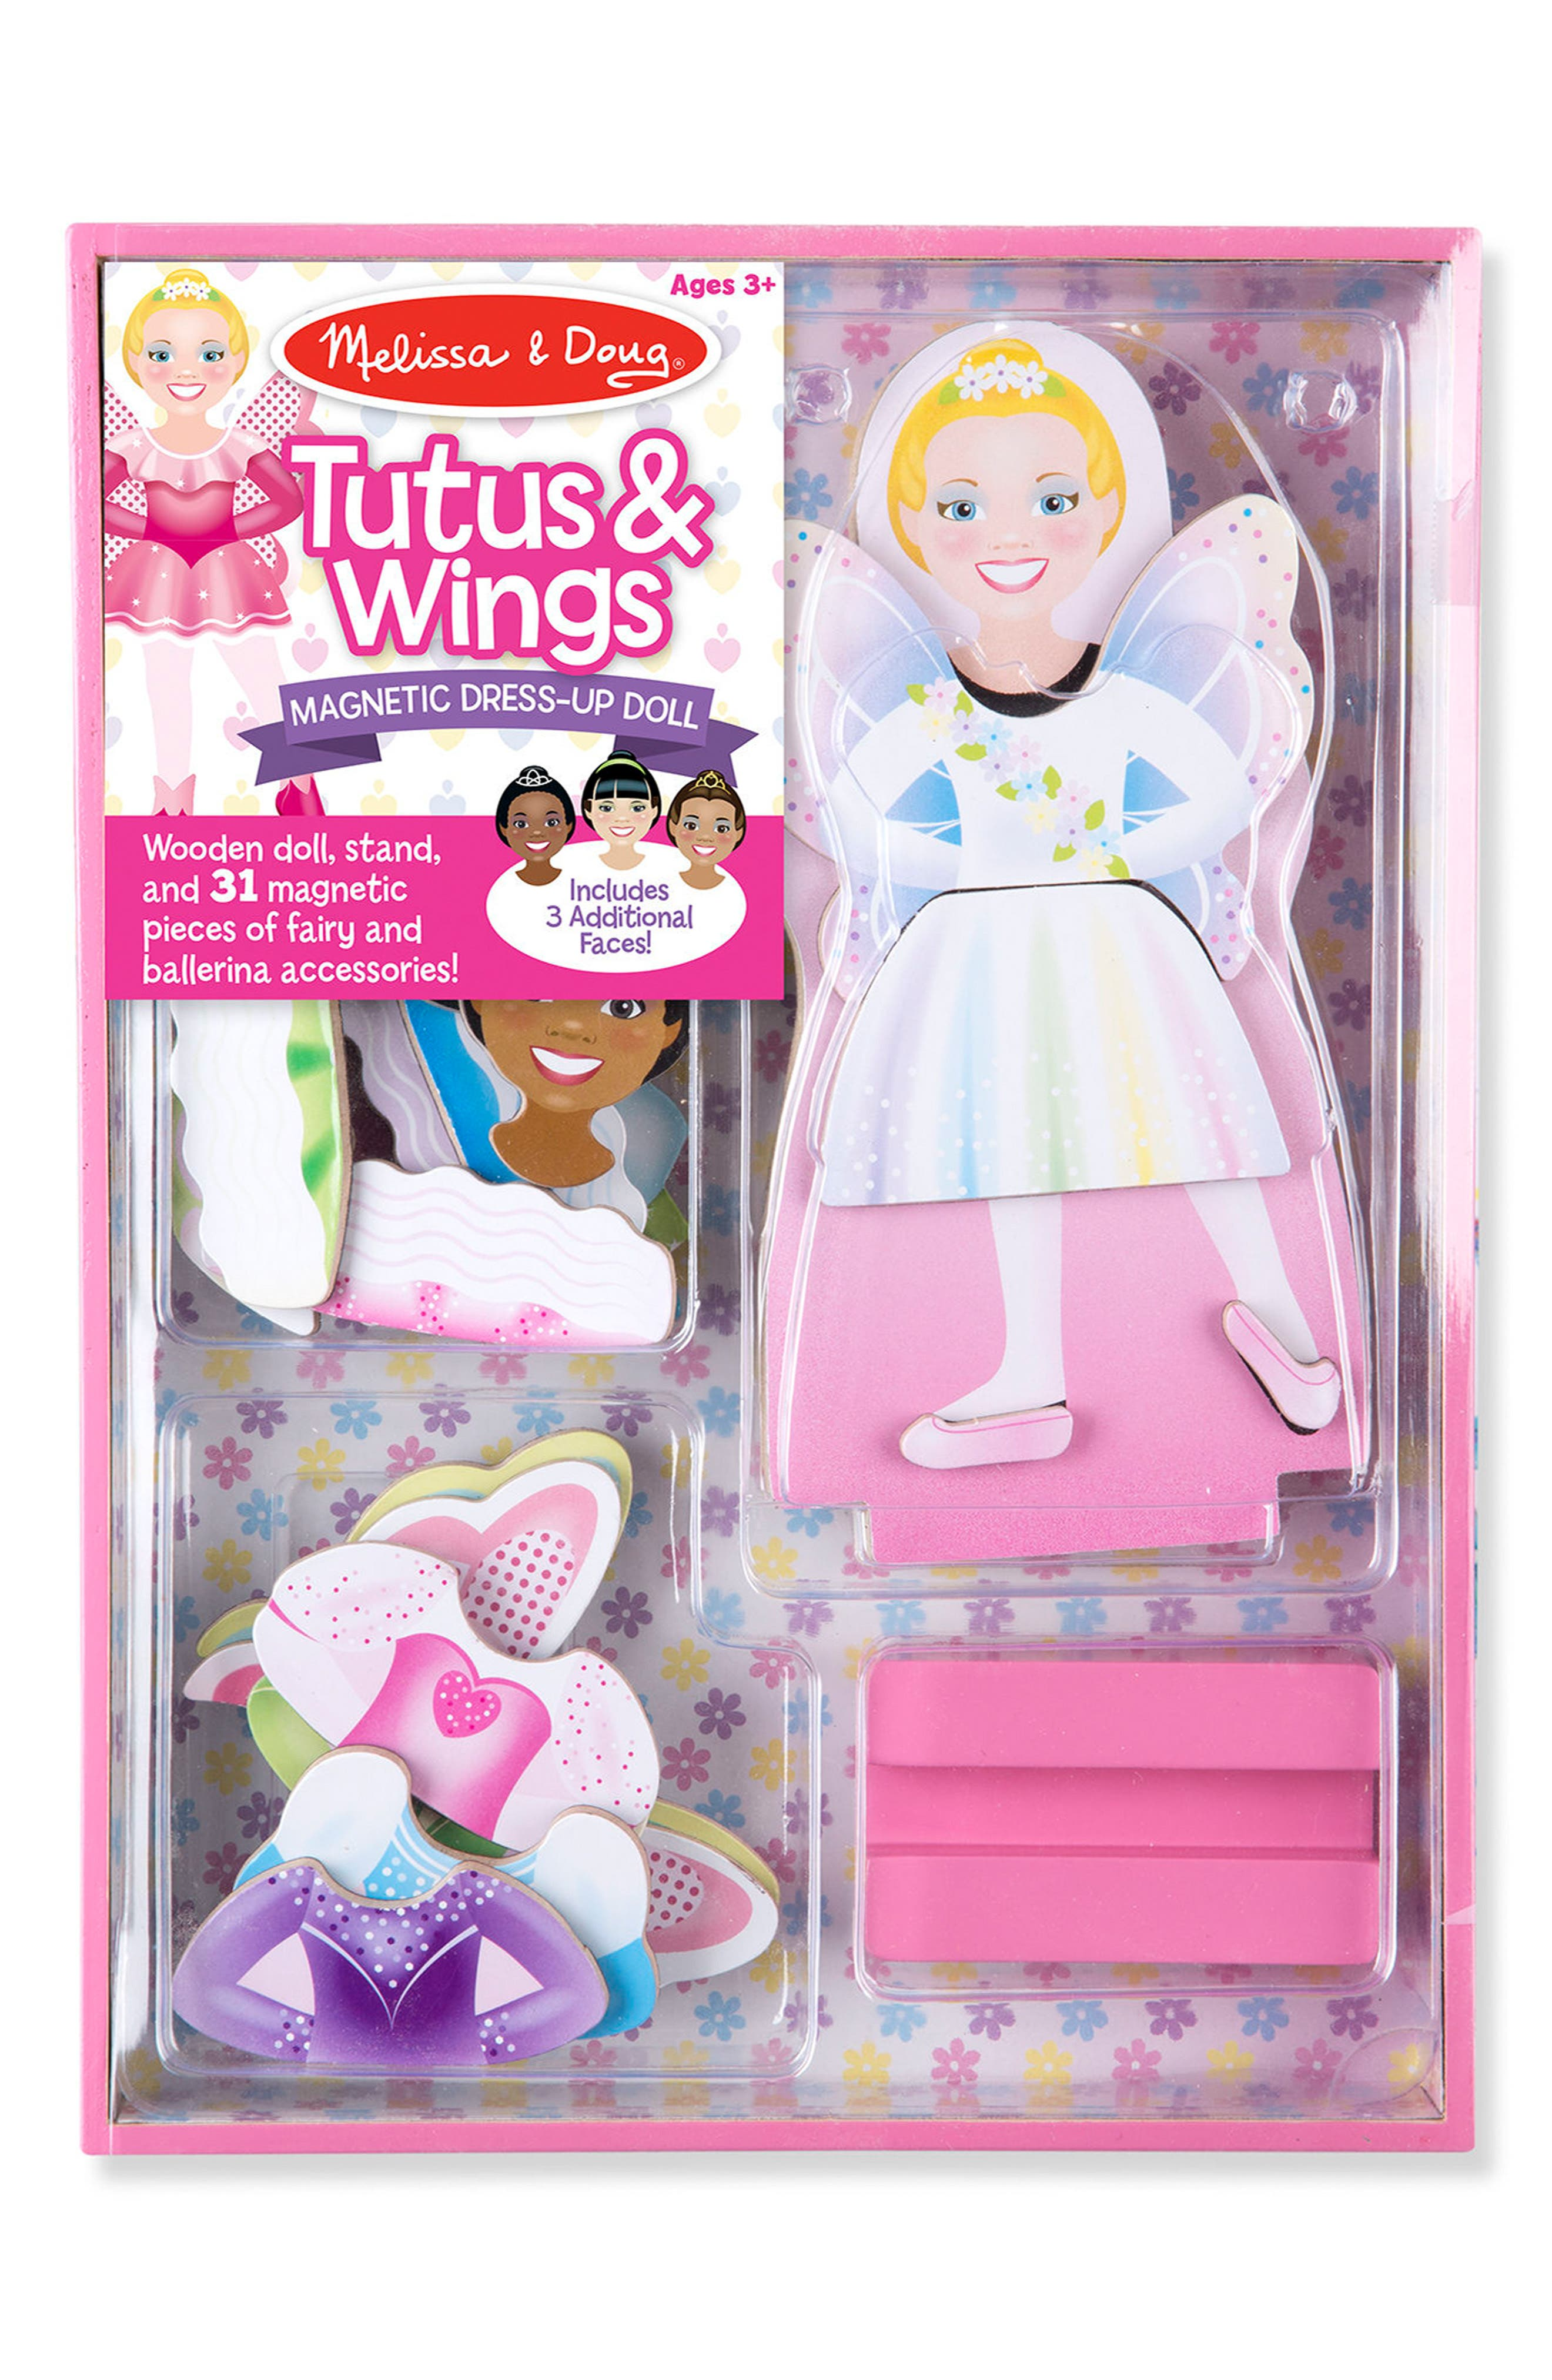 MELISSA & DOUG 33-Piece Tutus & Wings Magnetic Dress-Up Doll, Main, color, 650